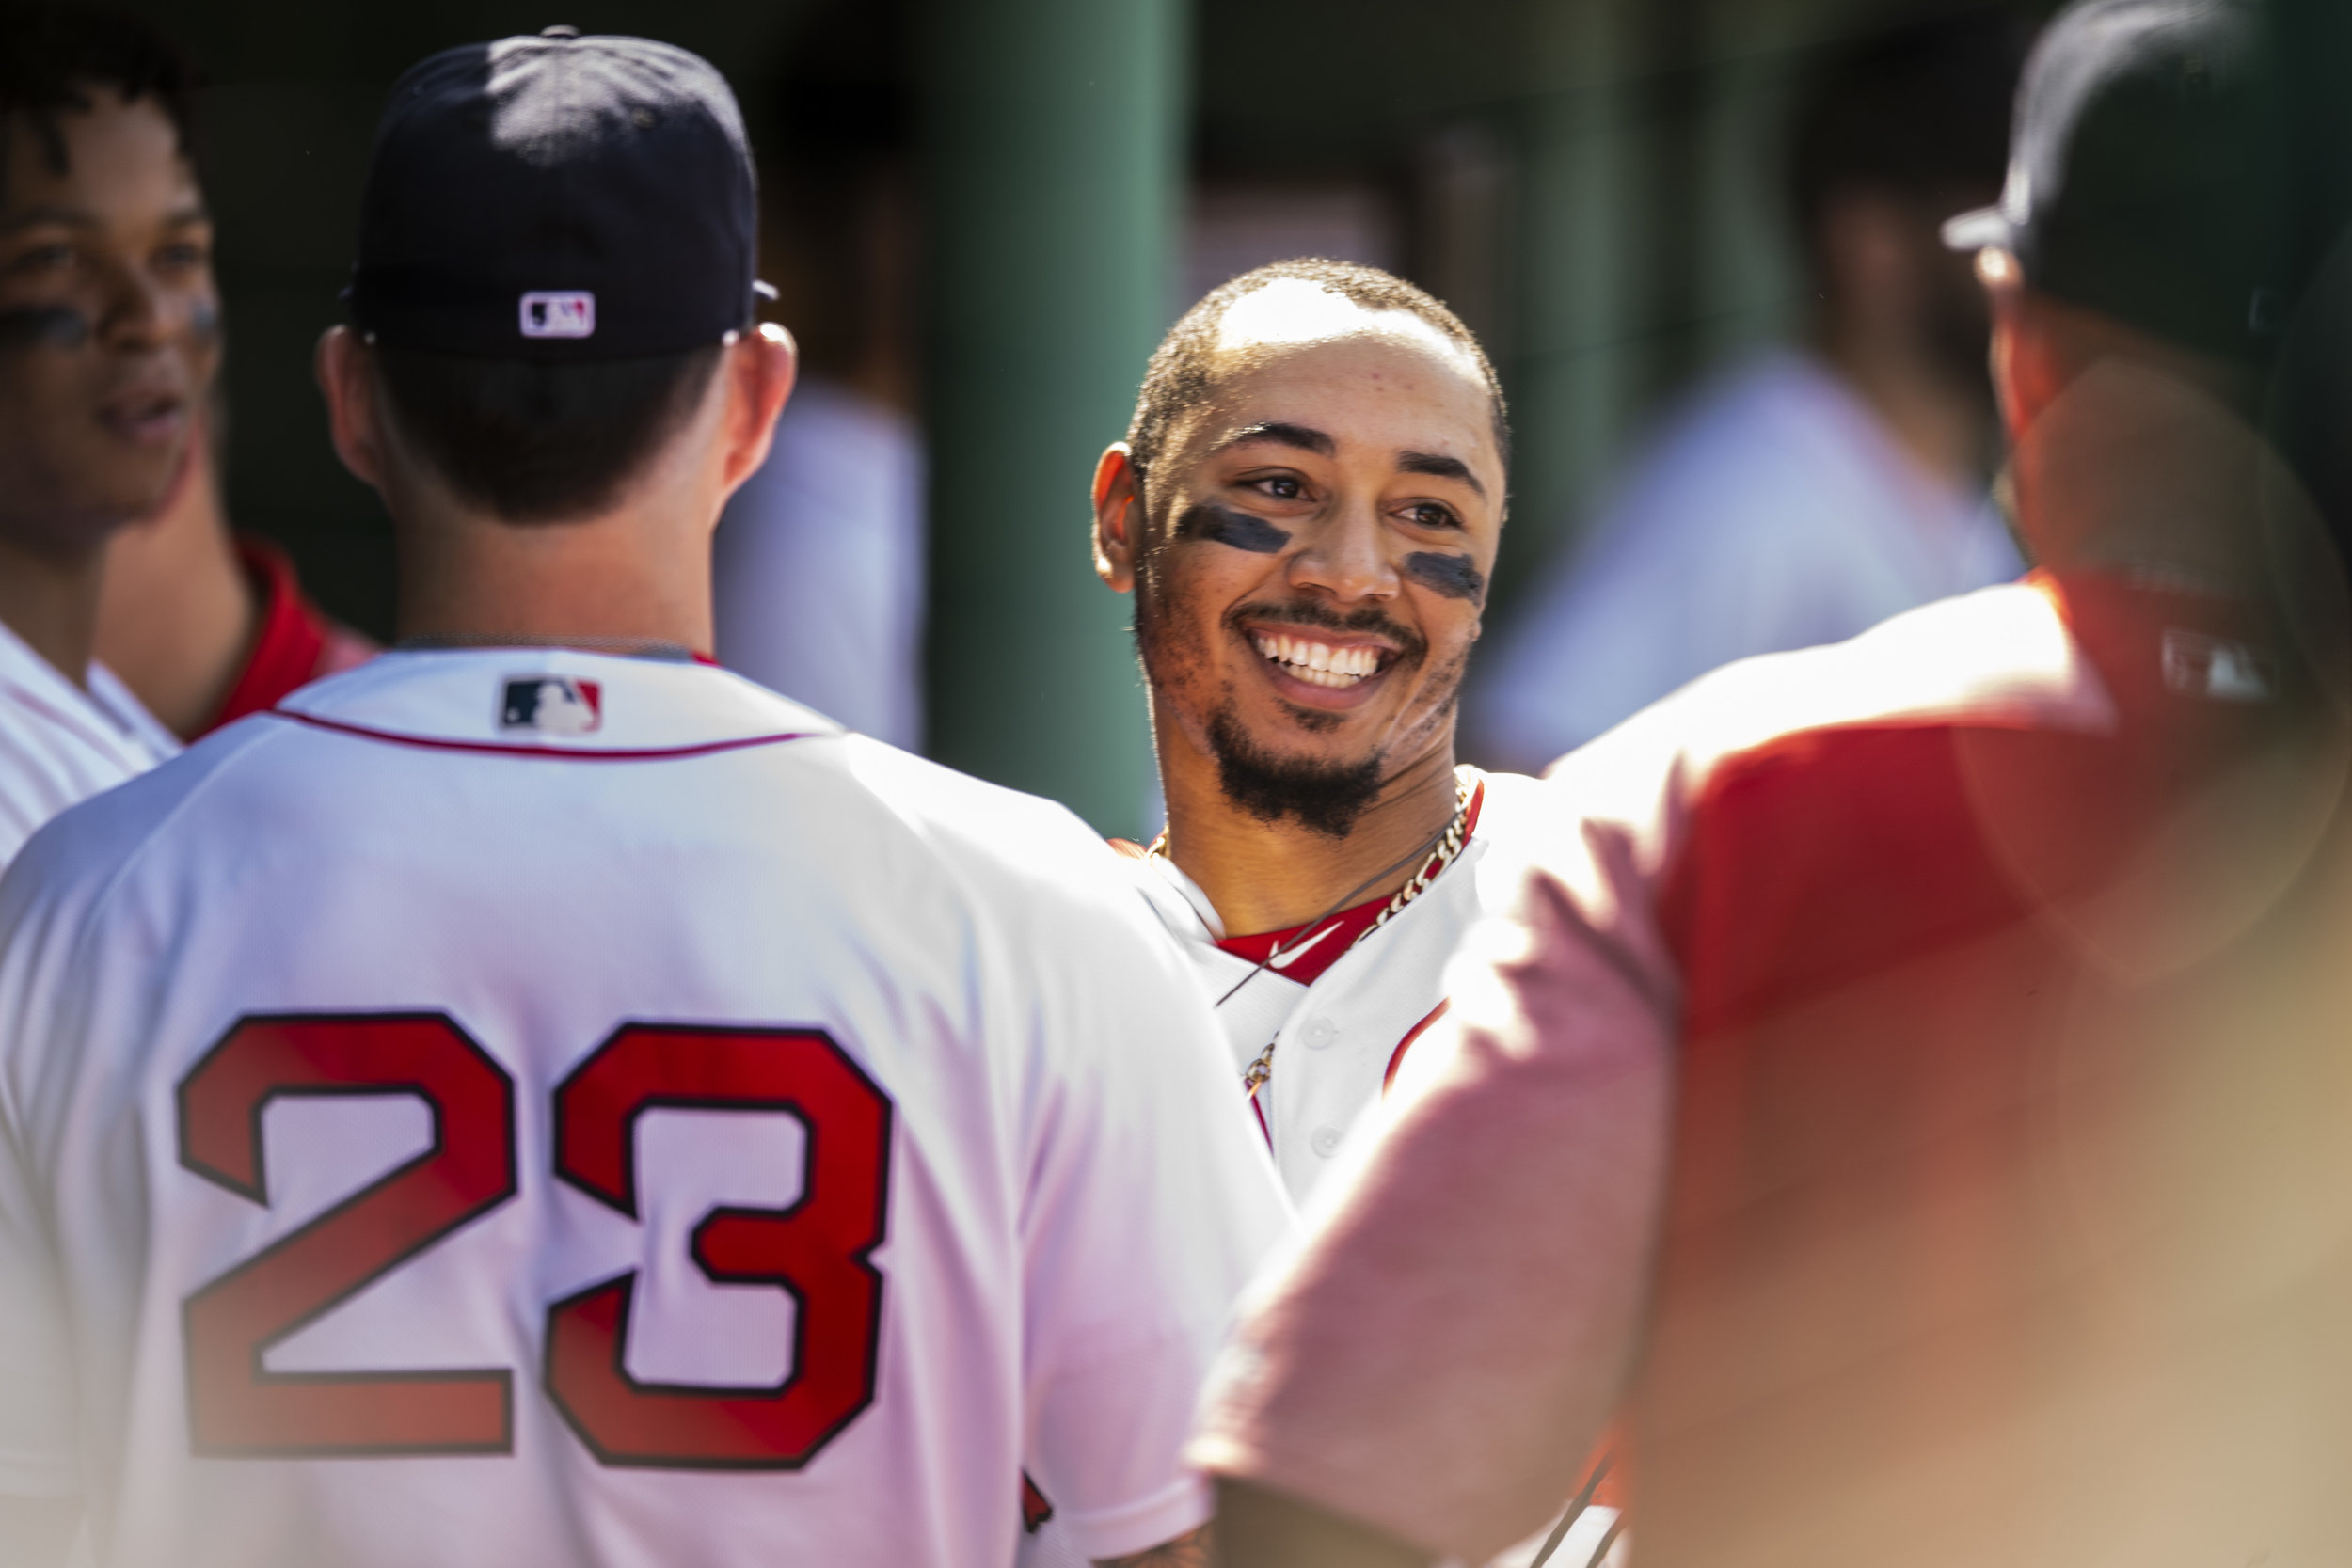 May 2, 2018, Boston, MA: Boston Red Sox outfielder Mookie Betts celebrates in the dugout after he hit a home run as the Boston Red Sox face the Kansas City Royals at Fenway Park in Boston, Massachusetts Wednesday, May 2, 2018. (Photo by Matthew Thomas/Boston Red Sox)